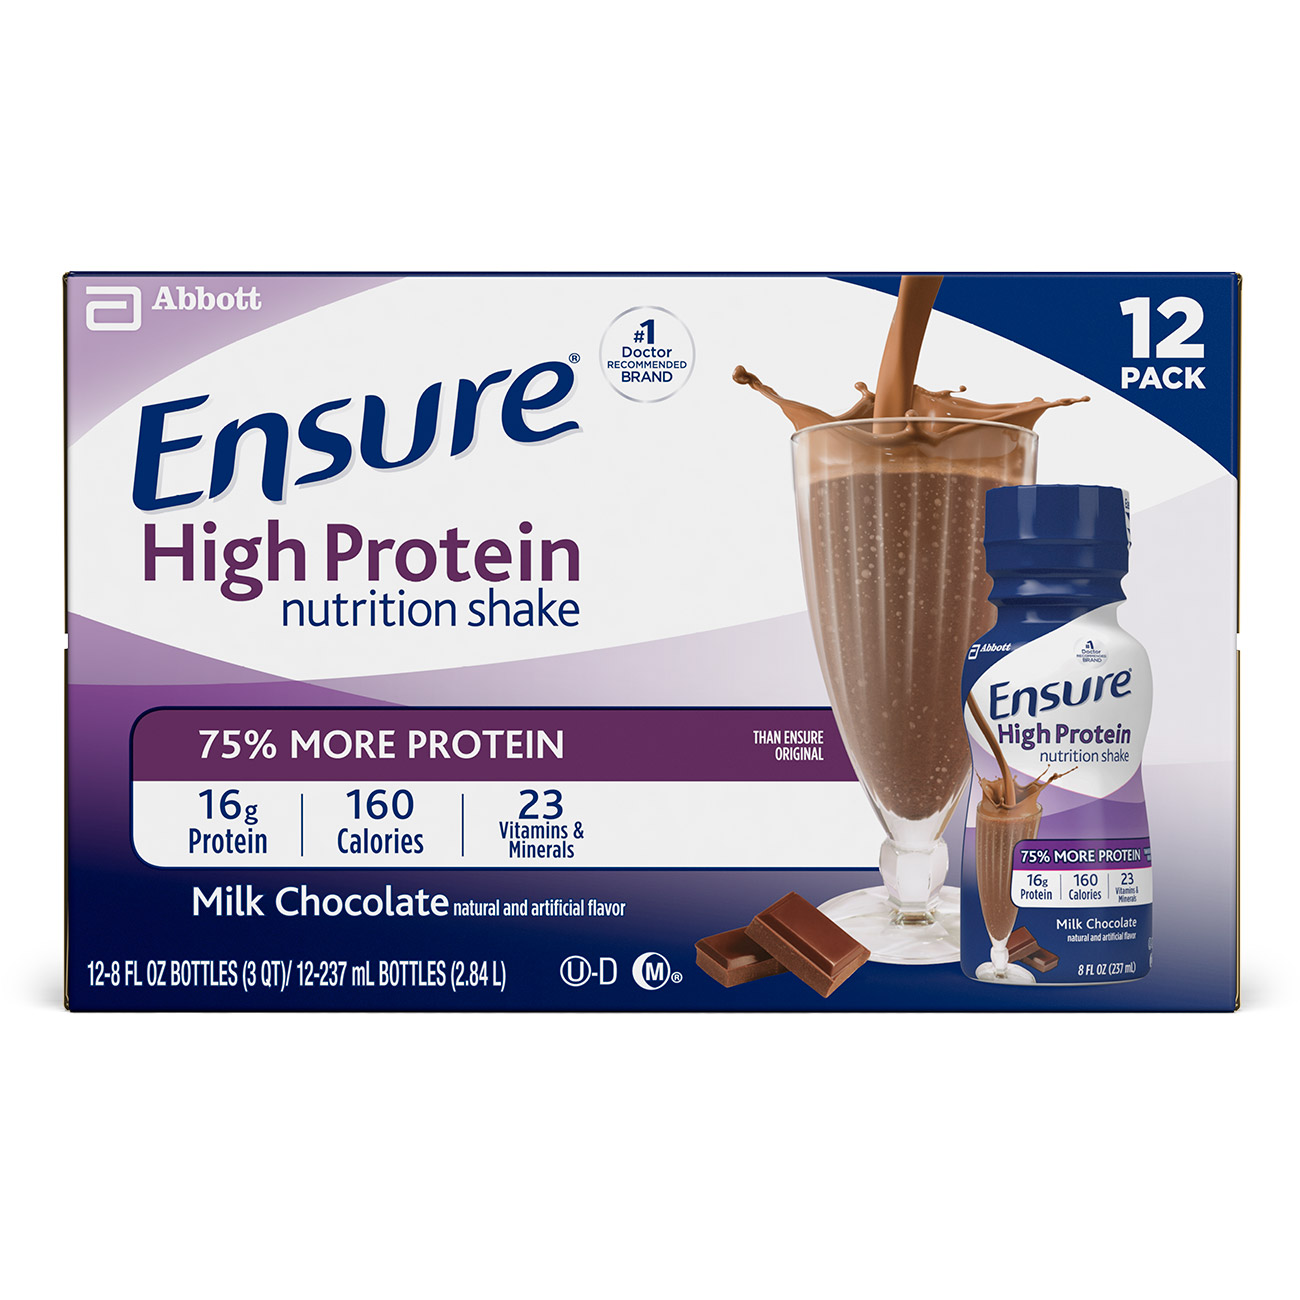 Ensure High Protein Nutrition Shake with 16 grams of high-quality protein, Meal Replacement Shakes, Low Fat, Milk Chocolate, 8 fl oz, 12 count